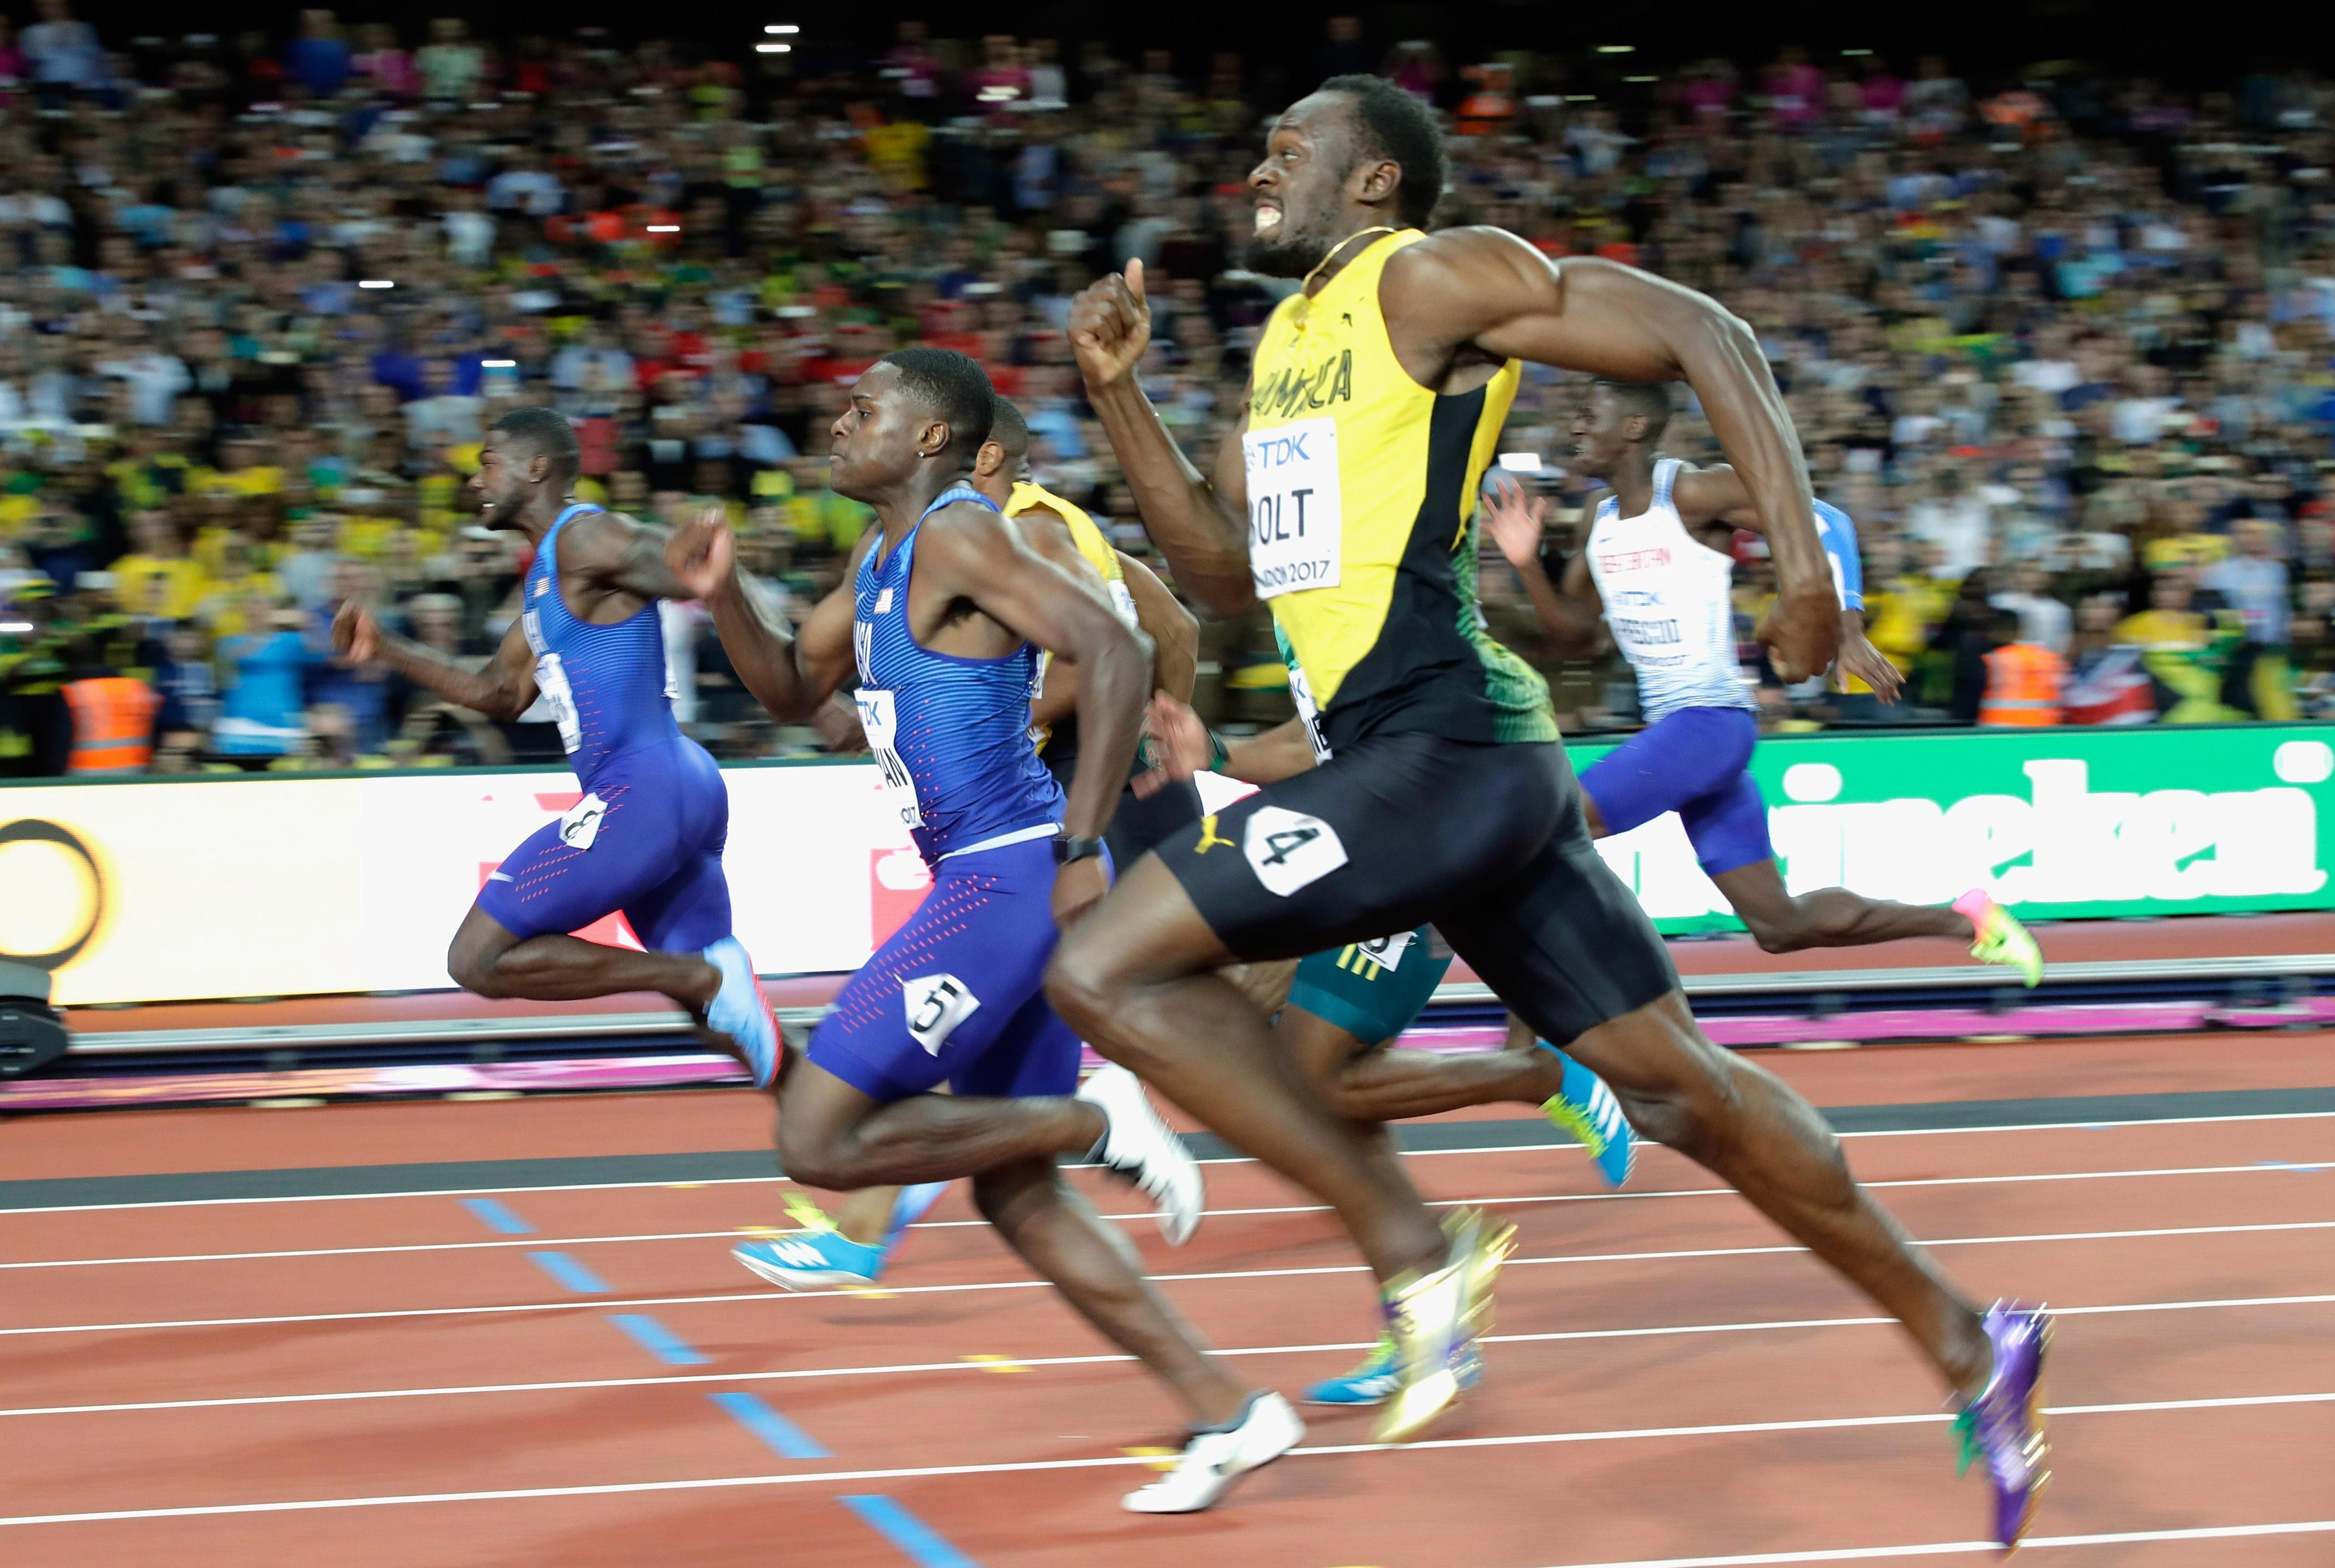 Coleman finished second behind Justin Gatlin and ahead of Usain Bolt in third at the World Championships in London last summer